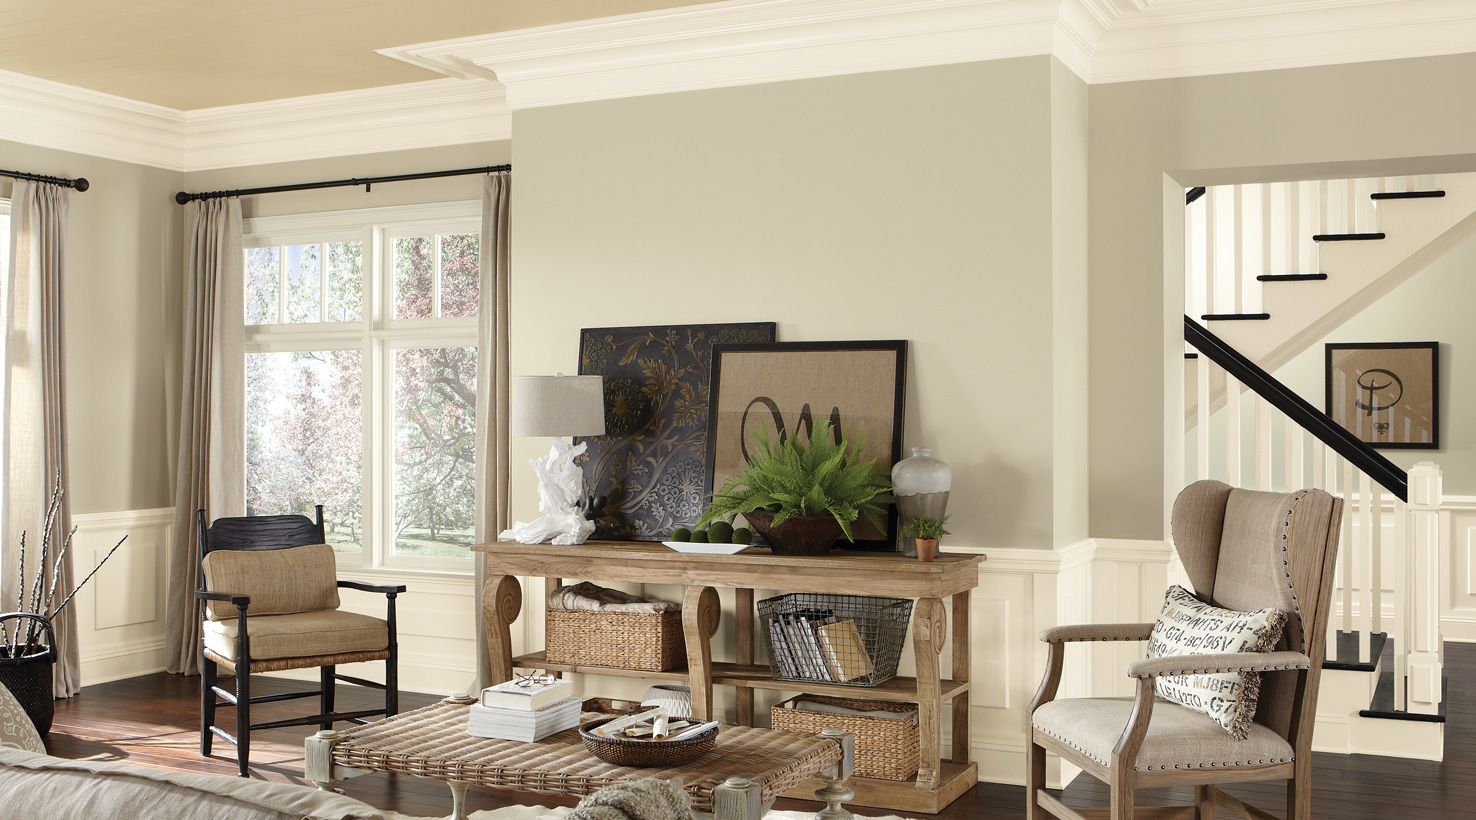 Painting ideas for living room Living room - shades of white ... EBVHGSW